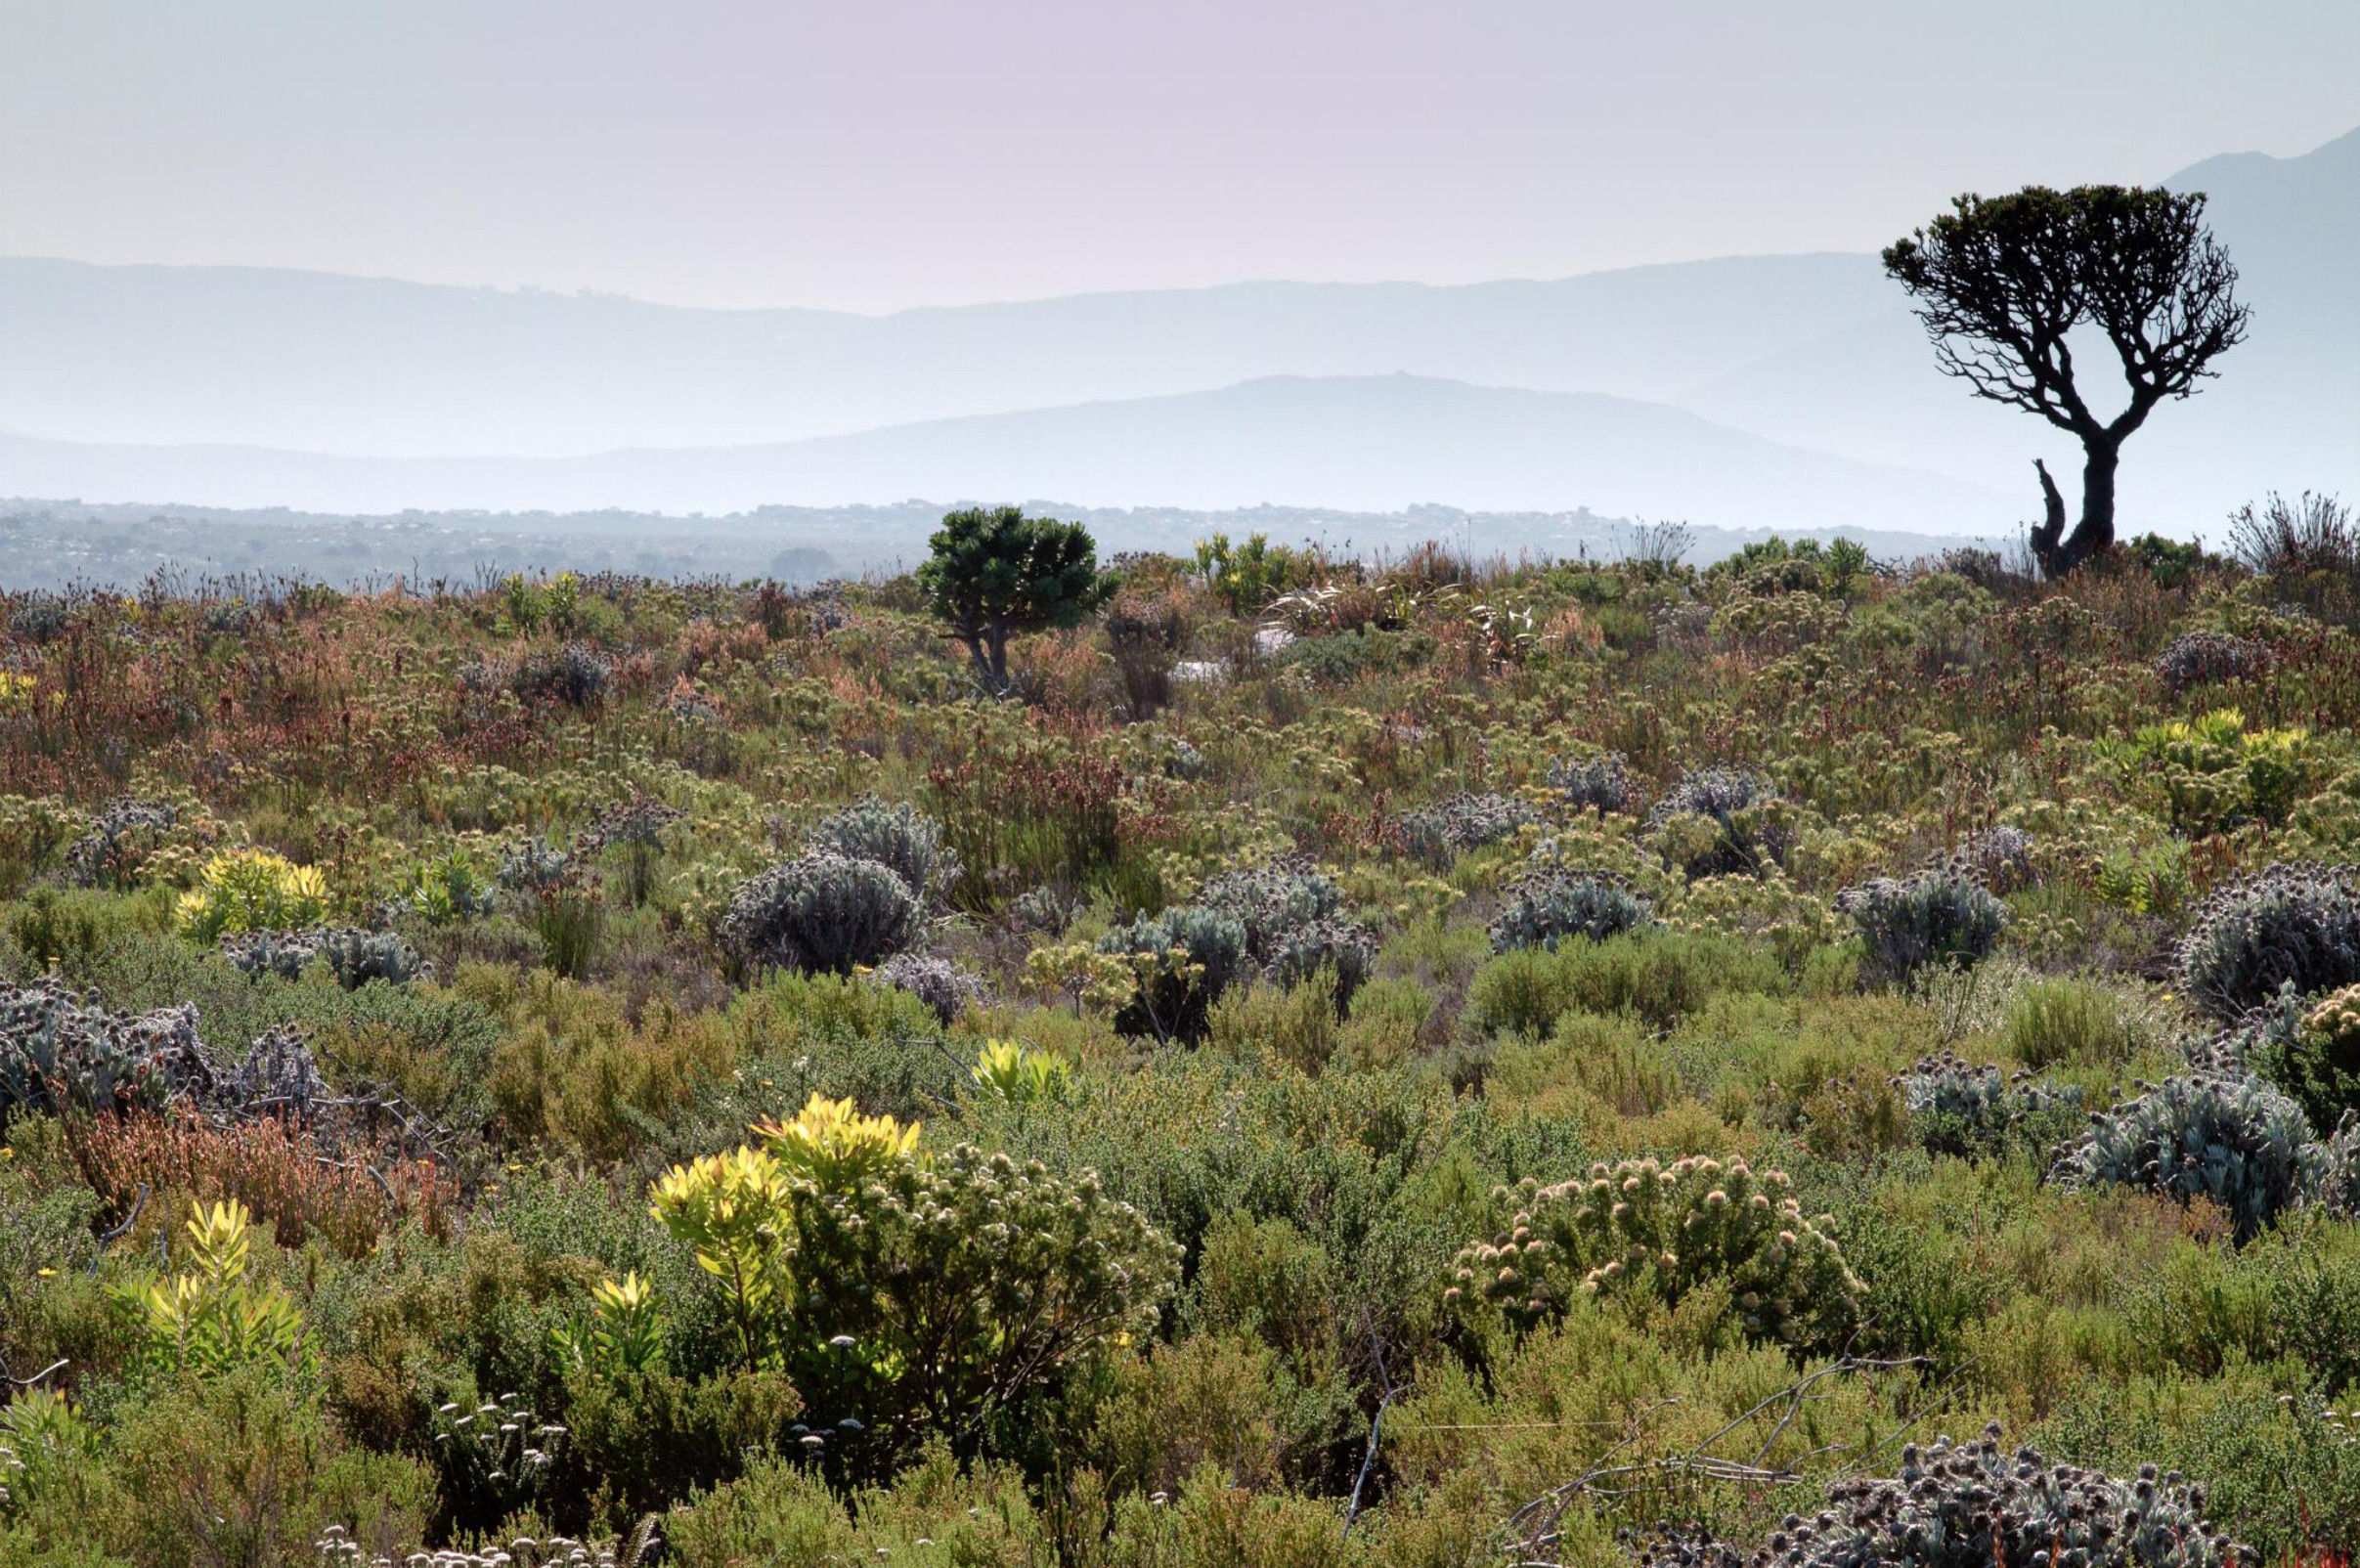 Fynbos is home to an incredible diversity of plants. Almost 9000 species occur in the region, with 6000 found nowhere else on earth. At present, nearly 2000 of these species are threatened with extinction. Photo: Adam Wilson